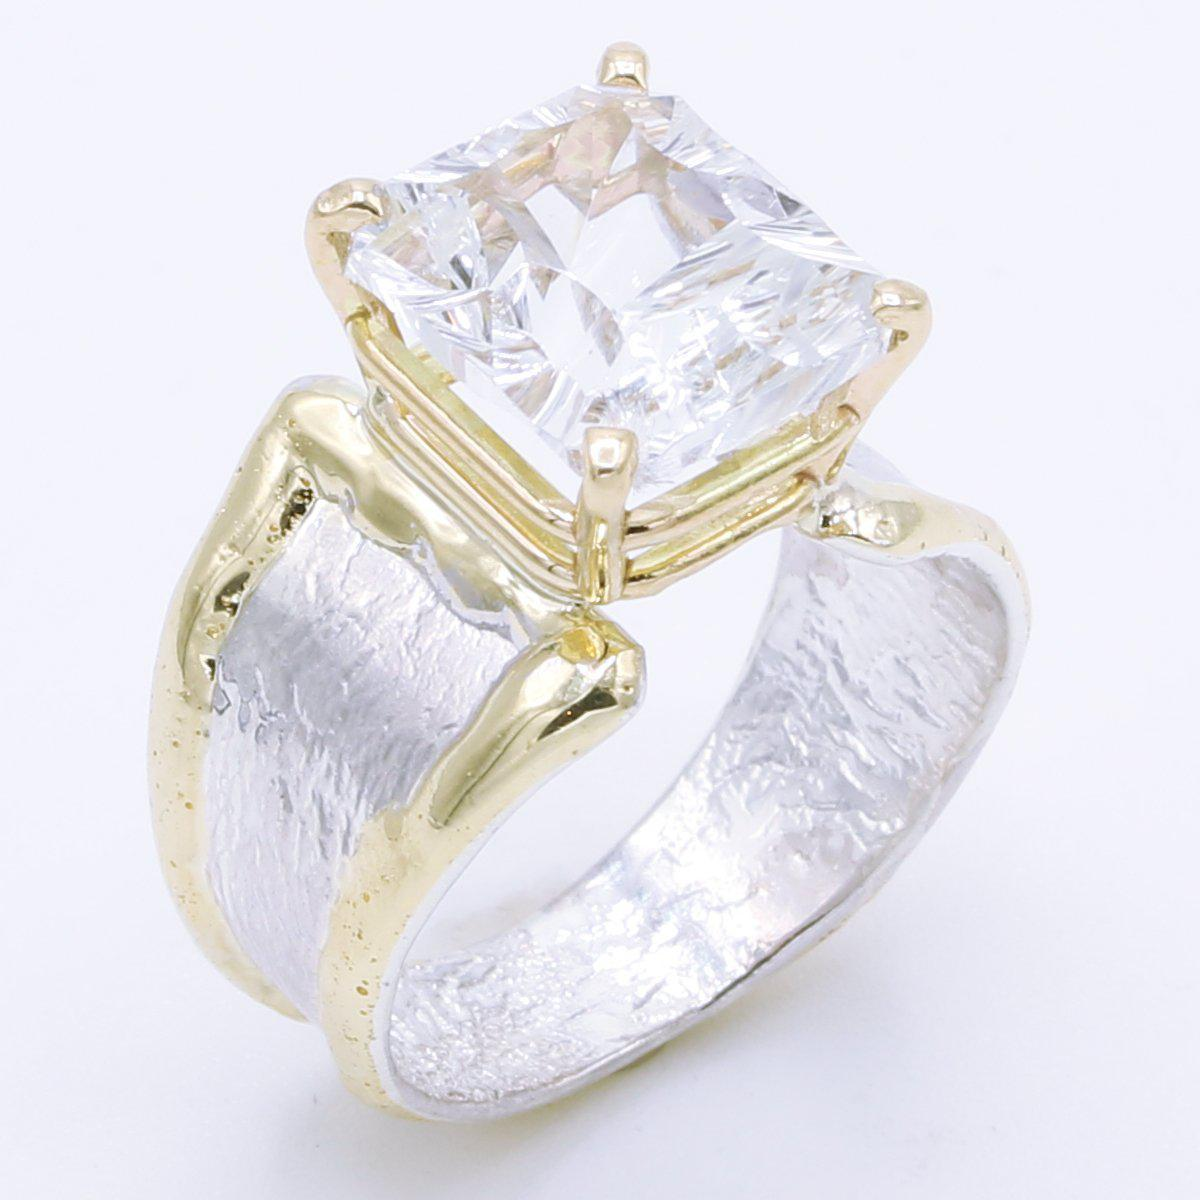 14K Gold & Crystalline Silver White Topaz Ring - 35167-Fusion Designs-Renee Taylor Gallery